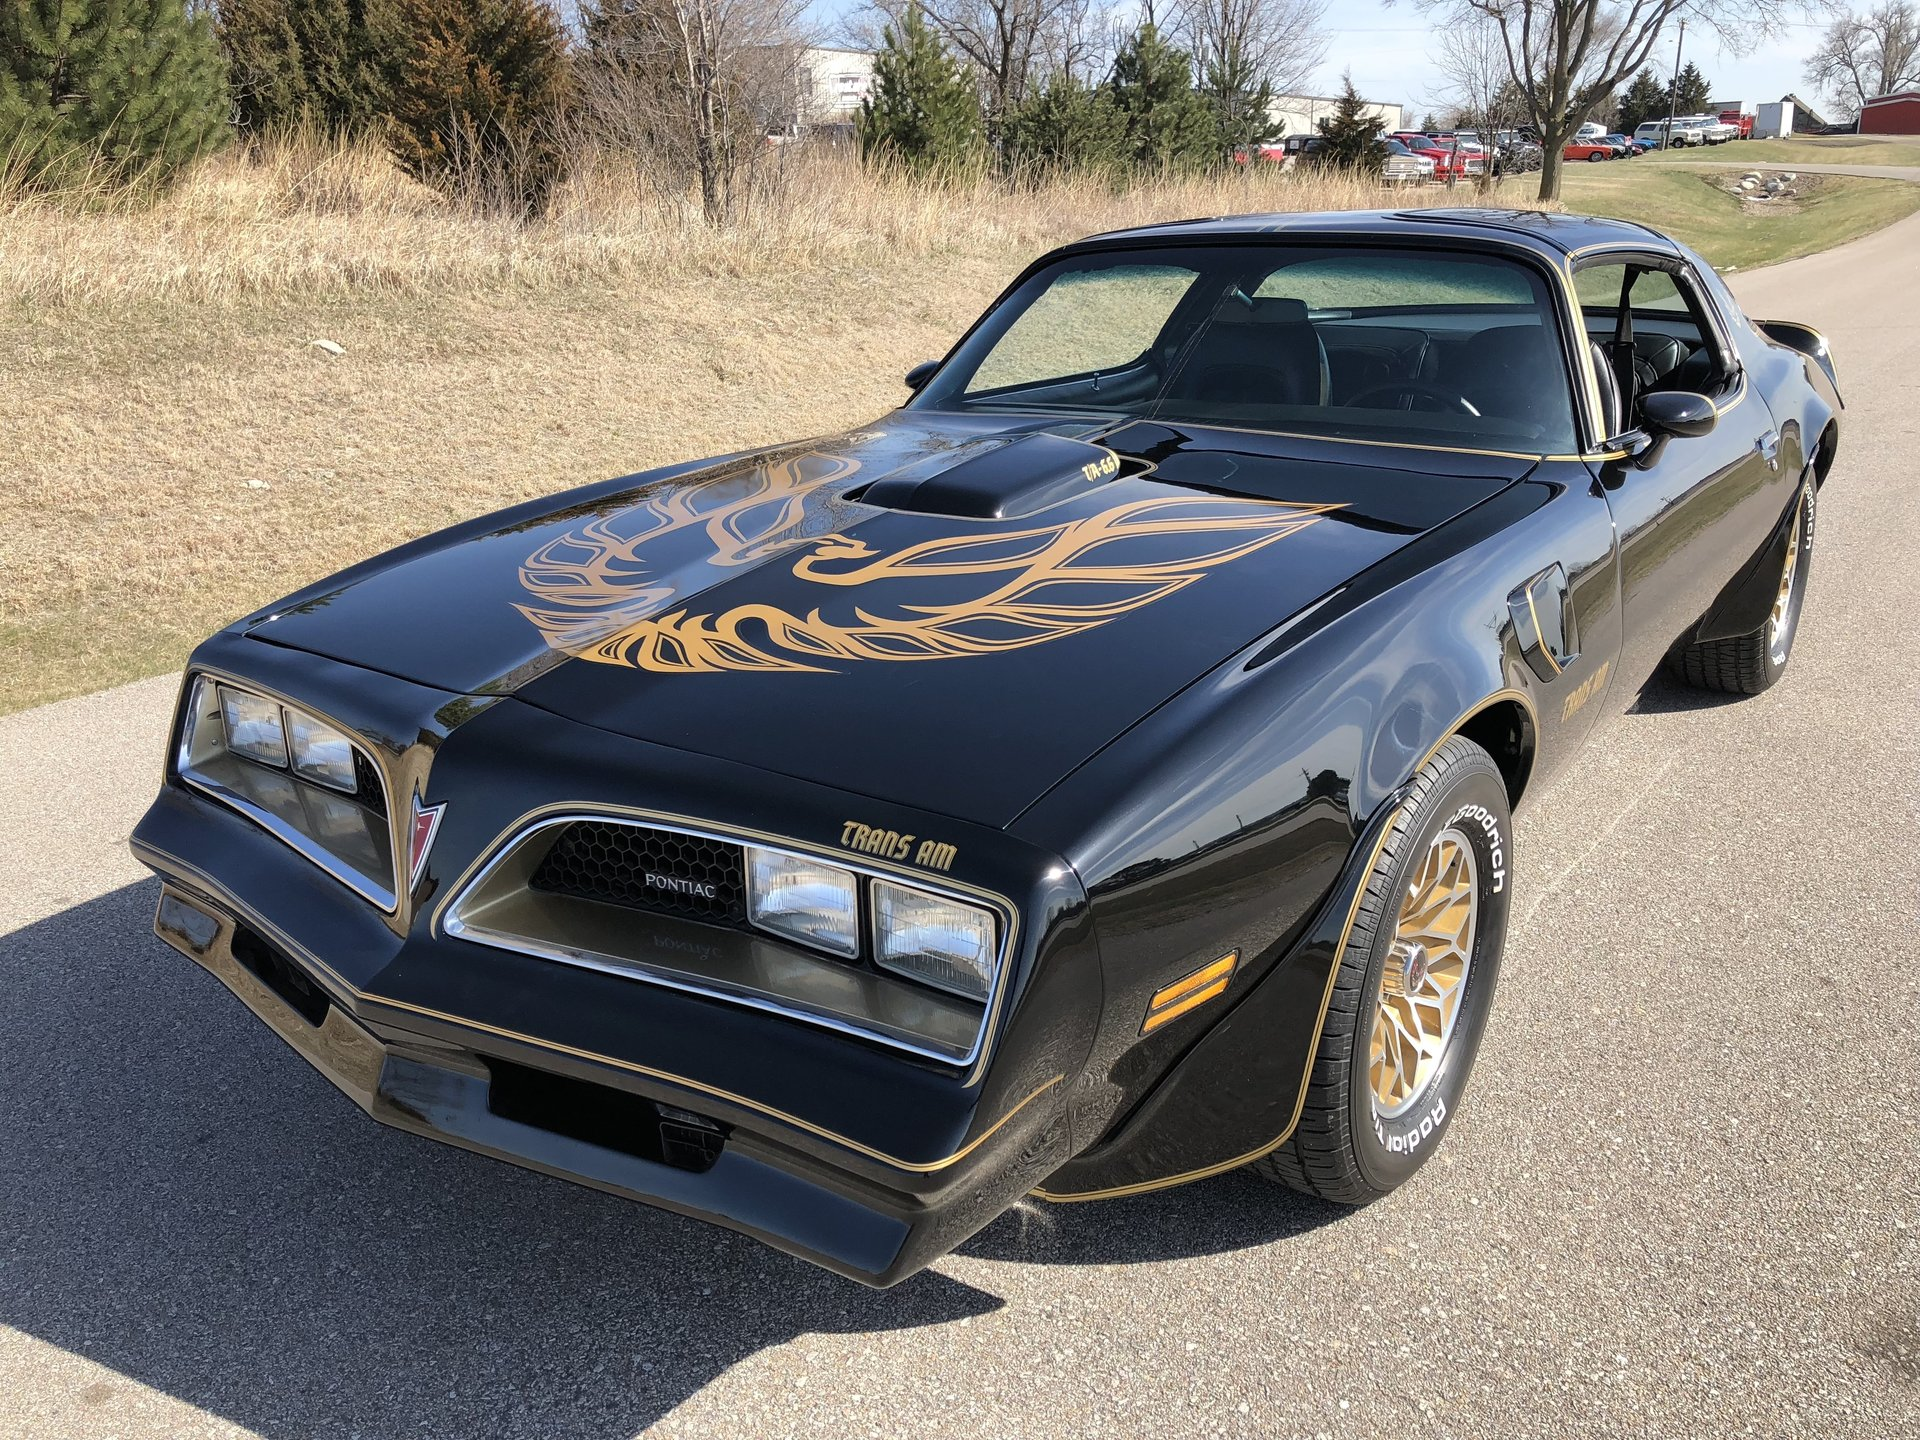 1977 trans am bandit edition-3514